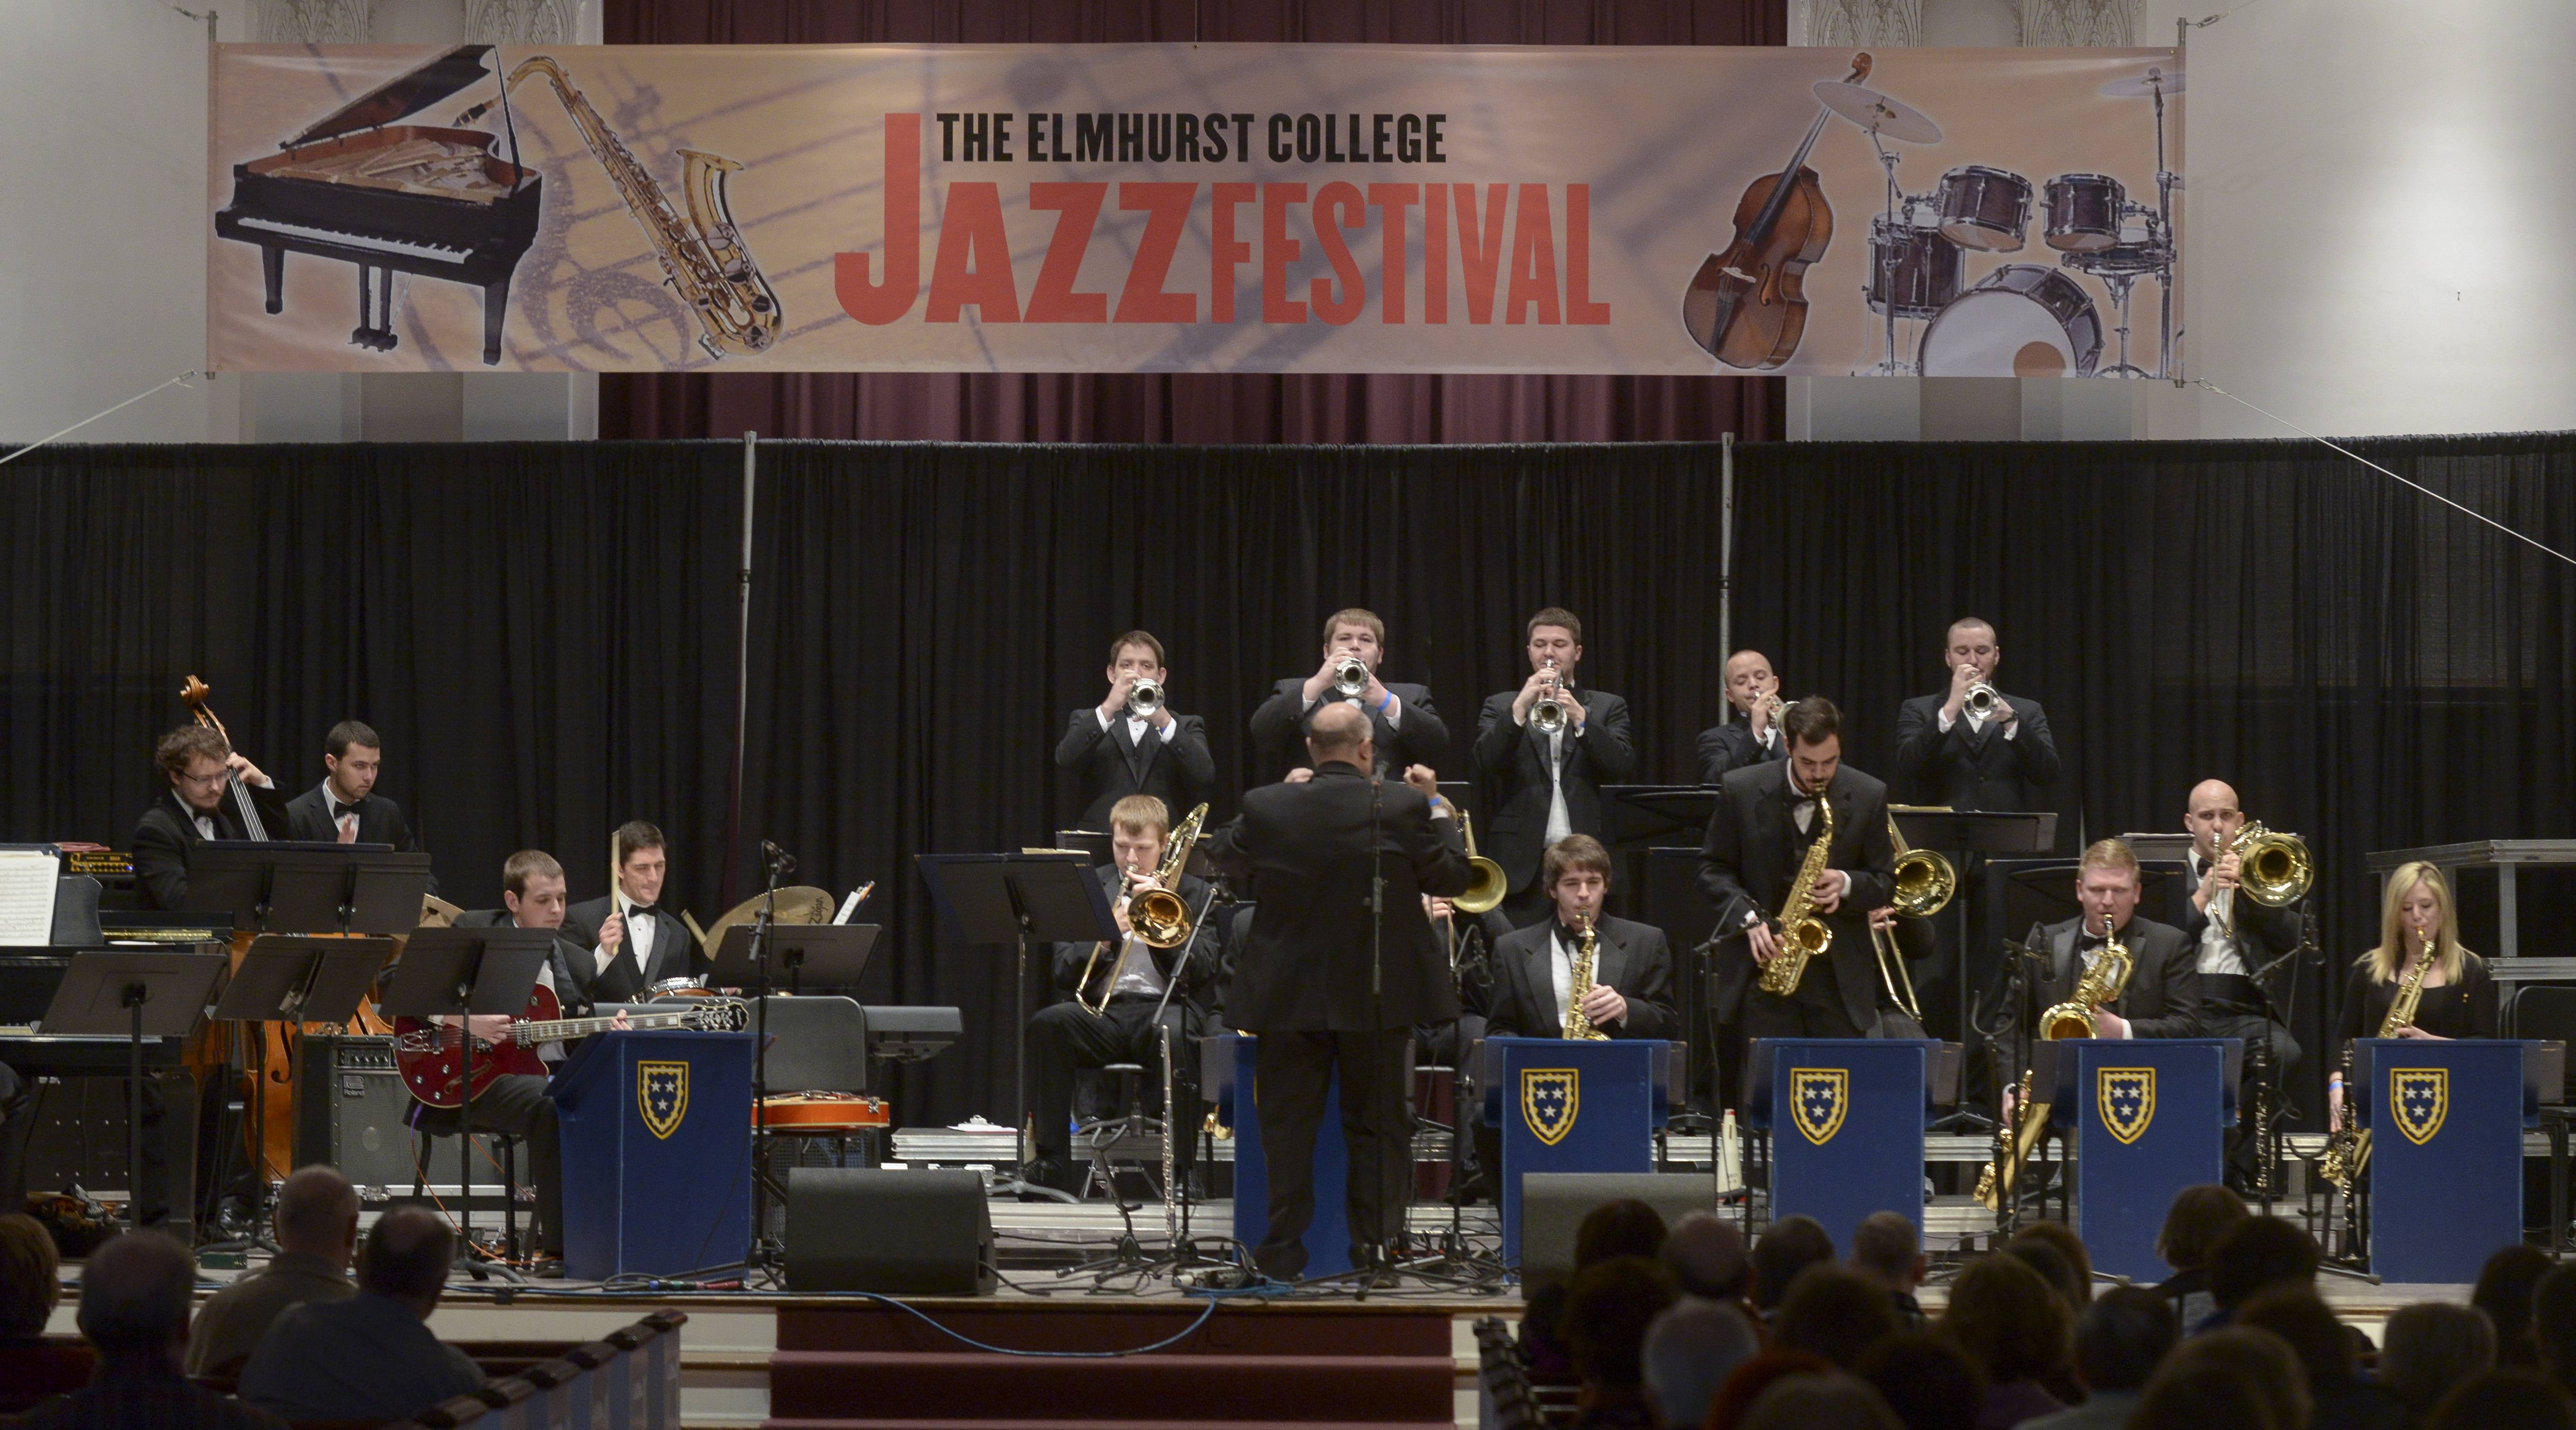 Members of Kentucky's Murray State University Big Band ensemble performs Sunday during the 47th annual Elmhurst College Jazz Festival. The prestigious fest draws high school, college and professional musicians from across the Midwest.